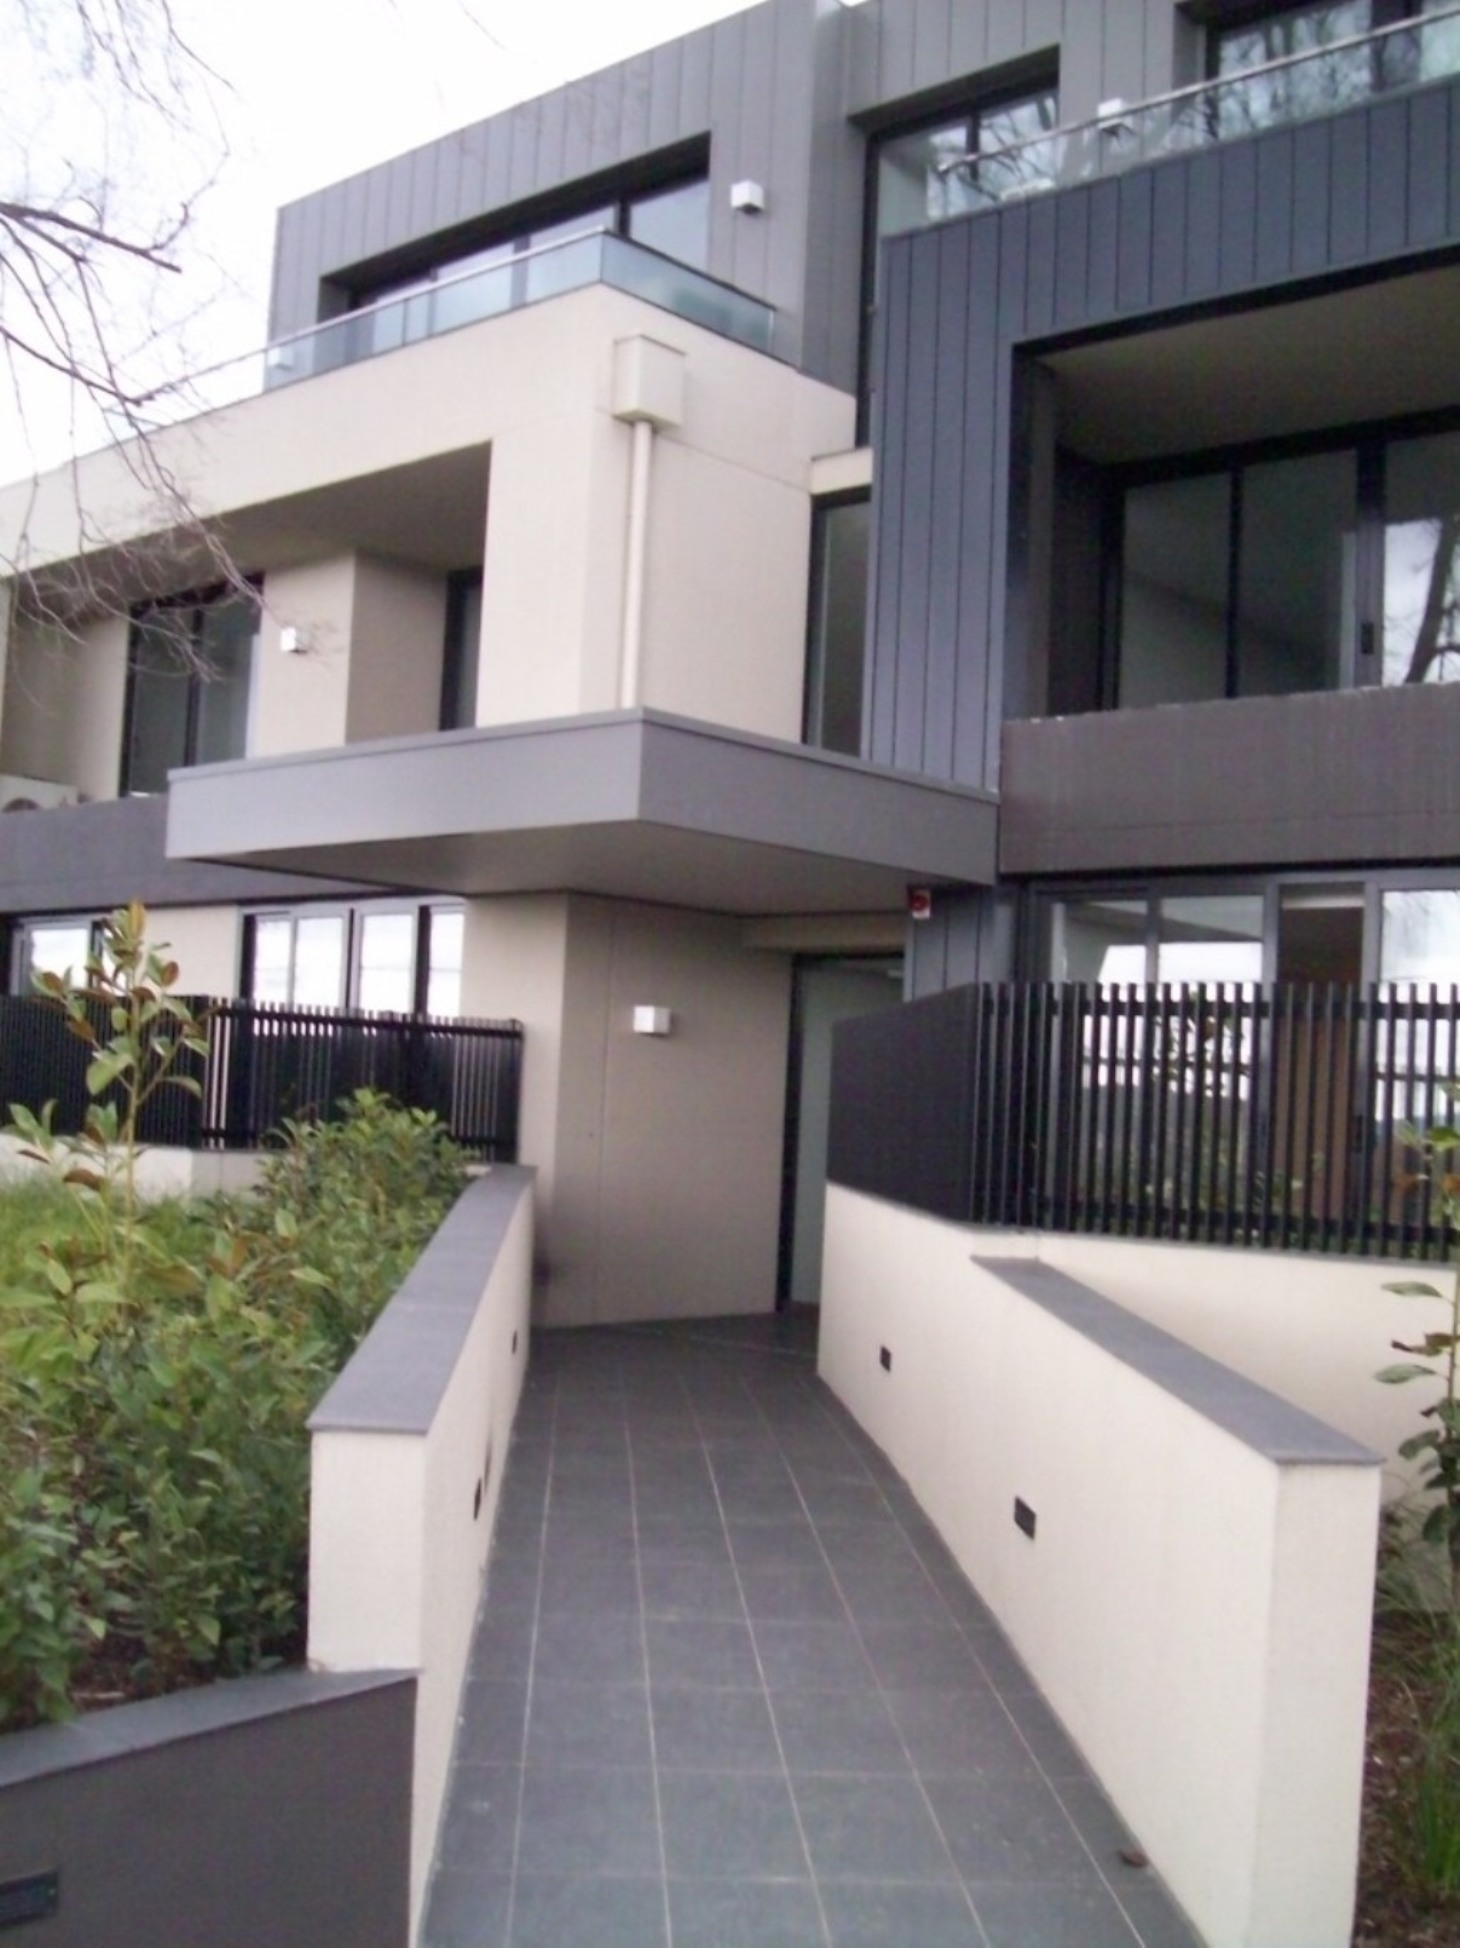 3 Storey 97 Whittens Ln Height 8.84 Metres Click To Enlarge